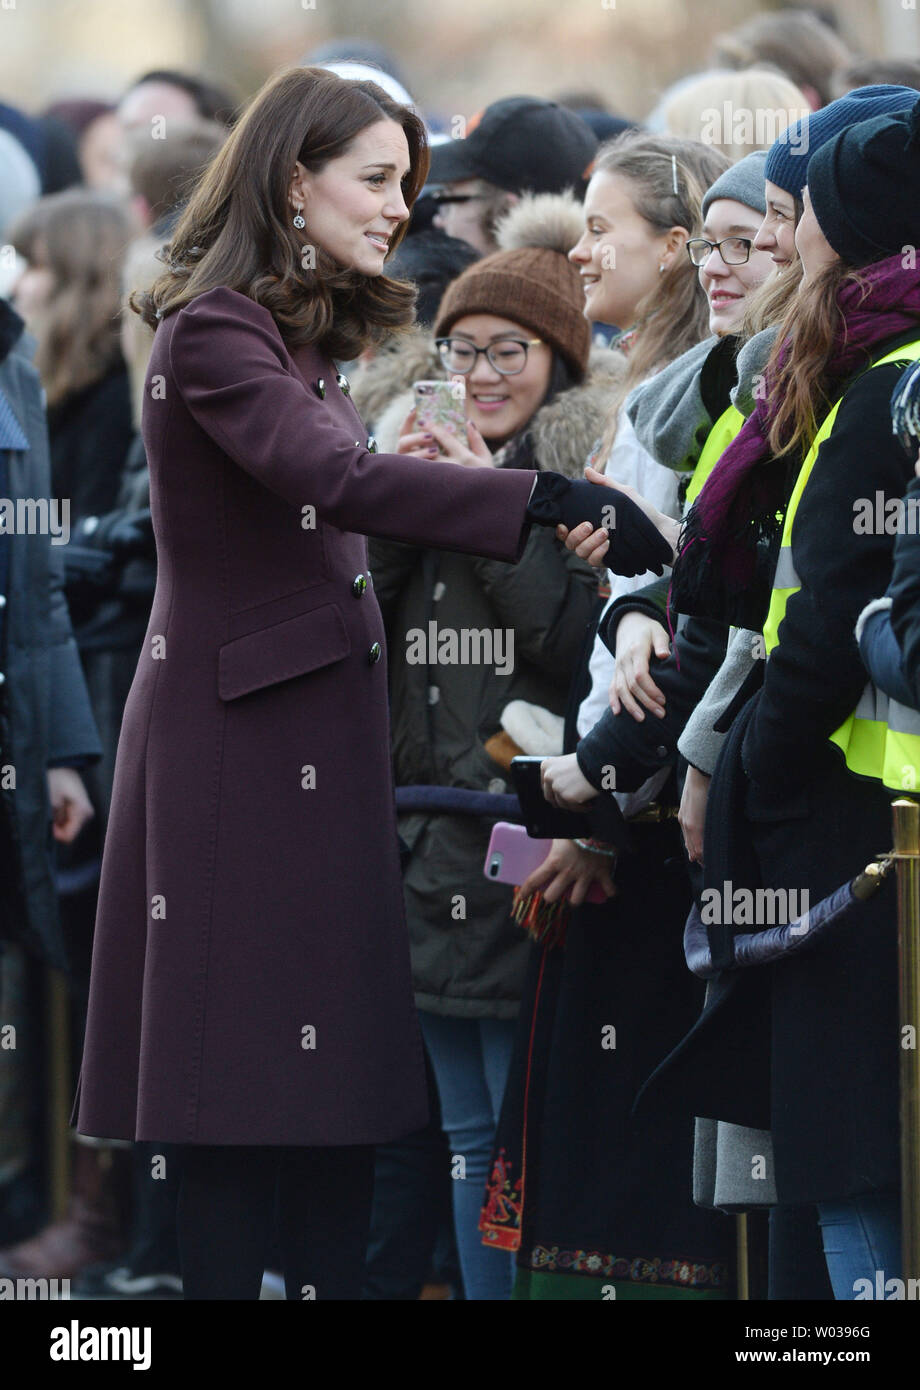 Catherine, Duchess of Cambridge, visits the Hartvig Nissen School as she and her husband Prince William, Duke of Cambridge, embark on a Royal tour of Oslo on February 2, 2018. Photo by Rune Hellestad/UPI - Stock Image